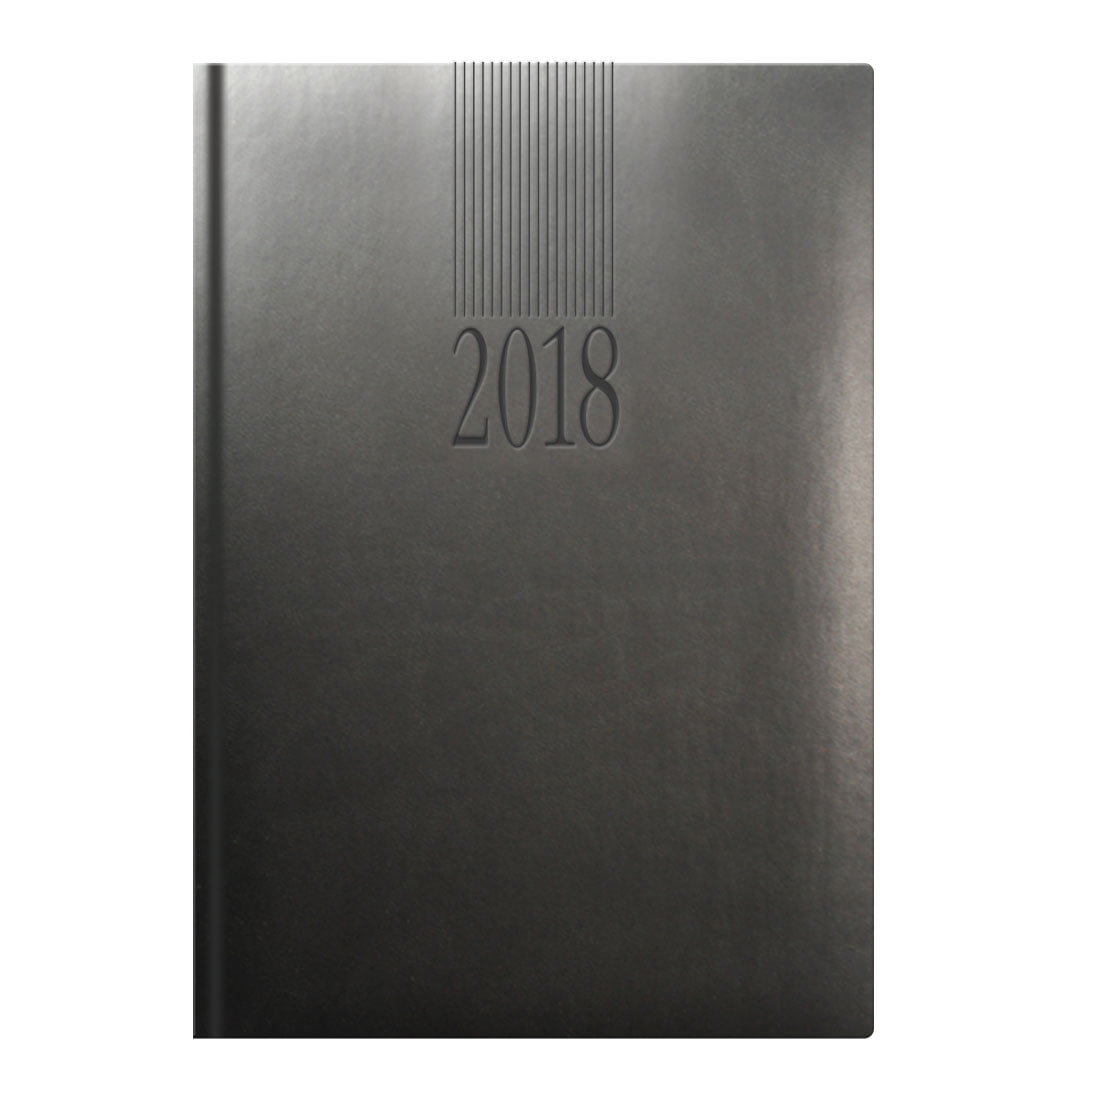 Tuscon A5 desk diary in graphite grey, head and tail bands, blind embossed with your logo.